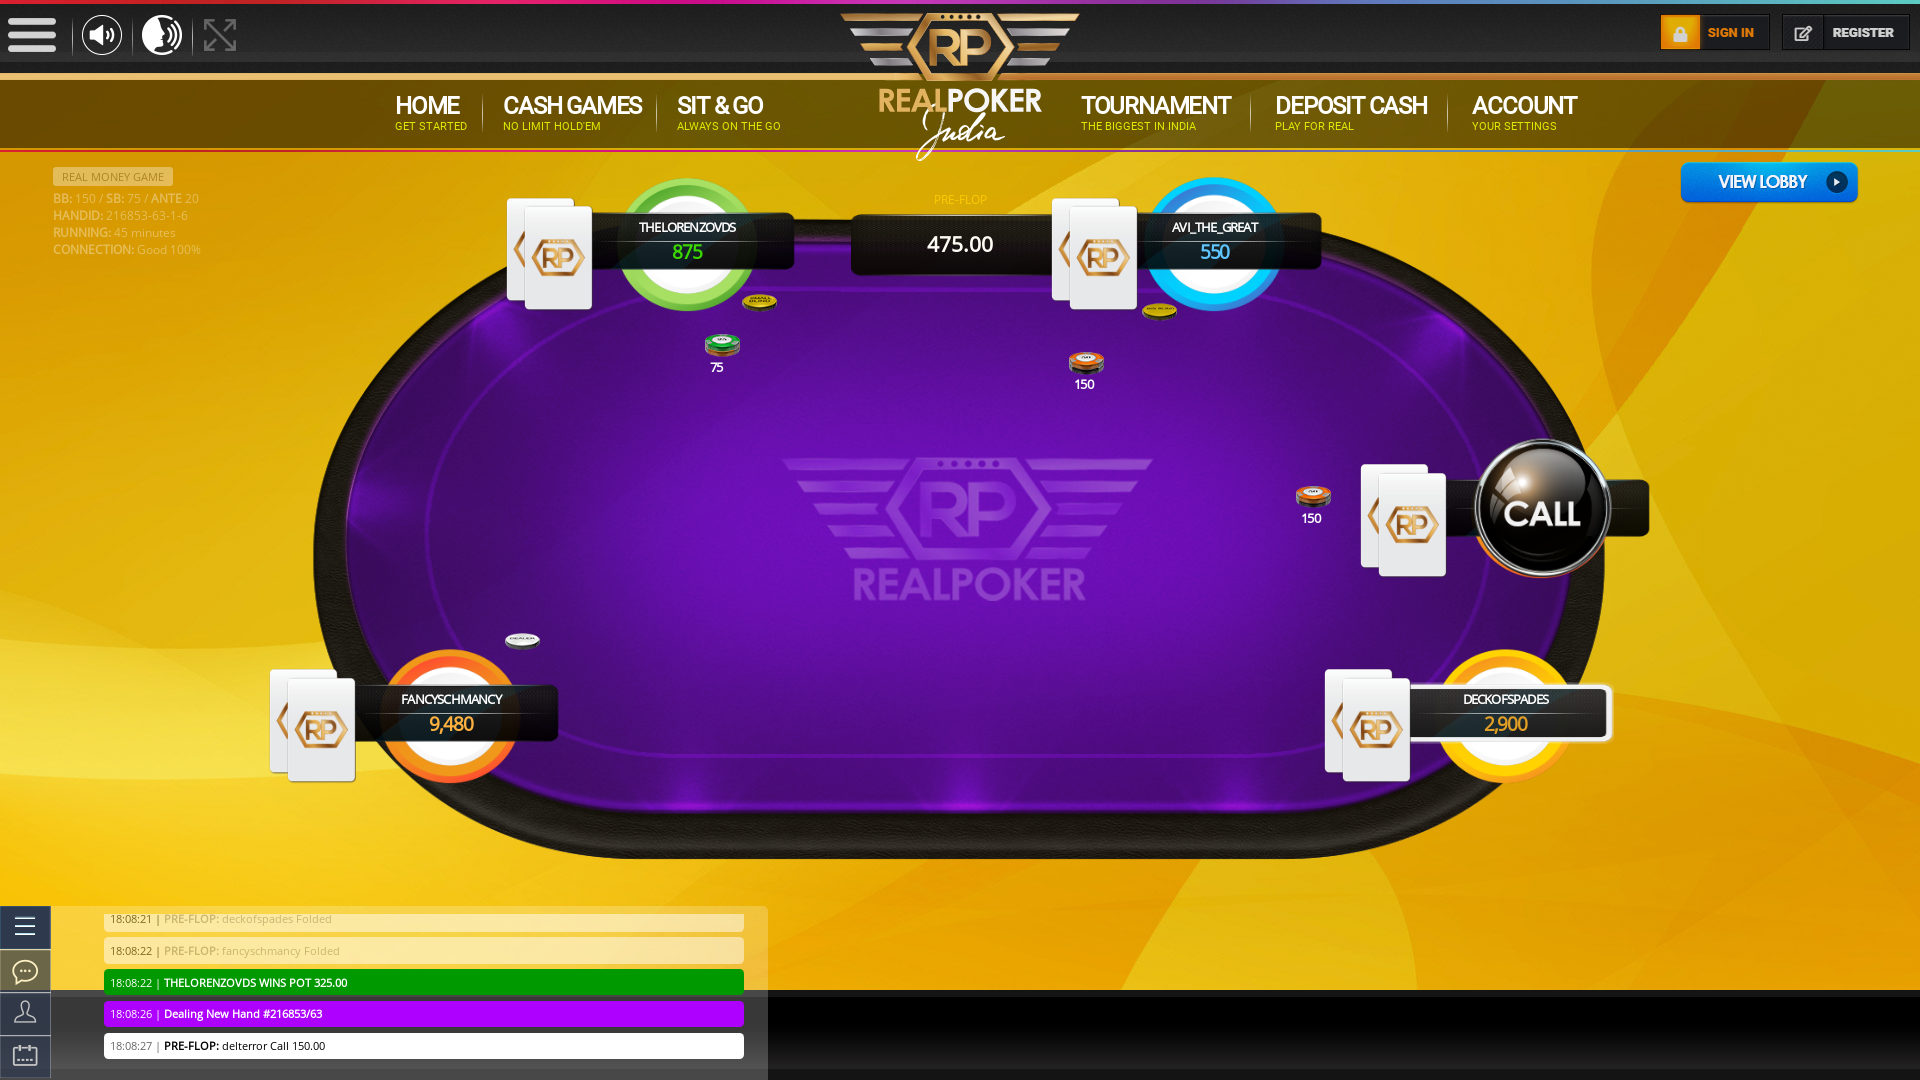 Banashankari, Bangalore texas holdem poker table on a 10 player table in the 44th minute